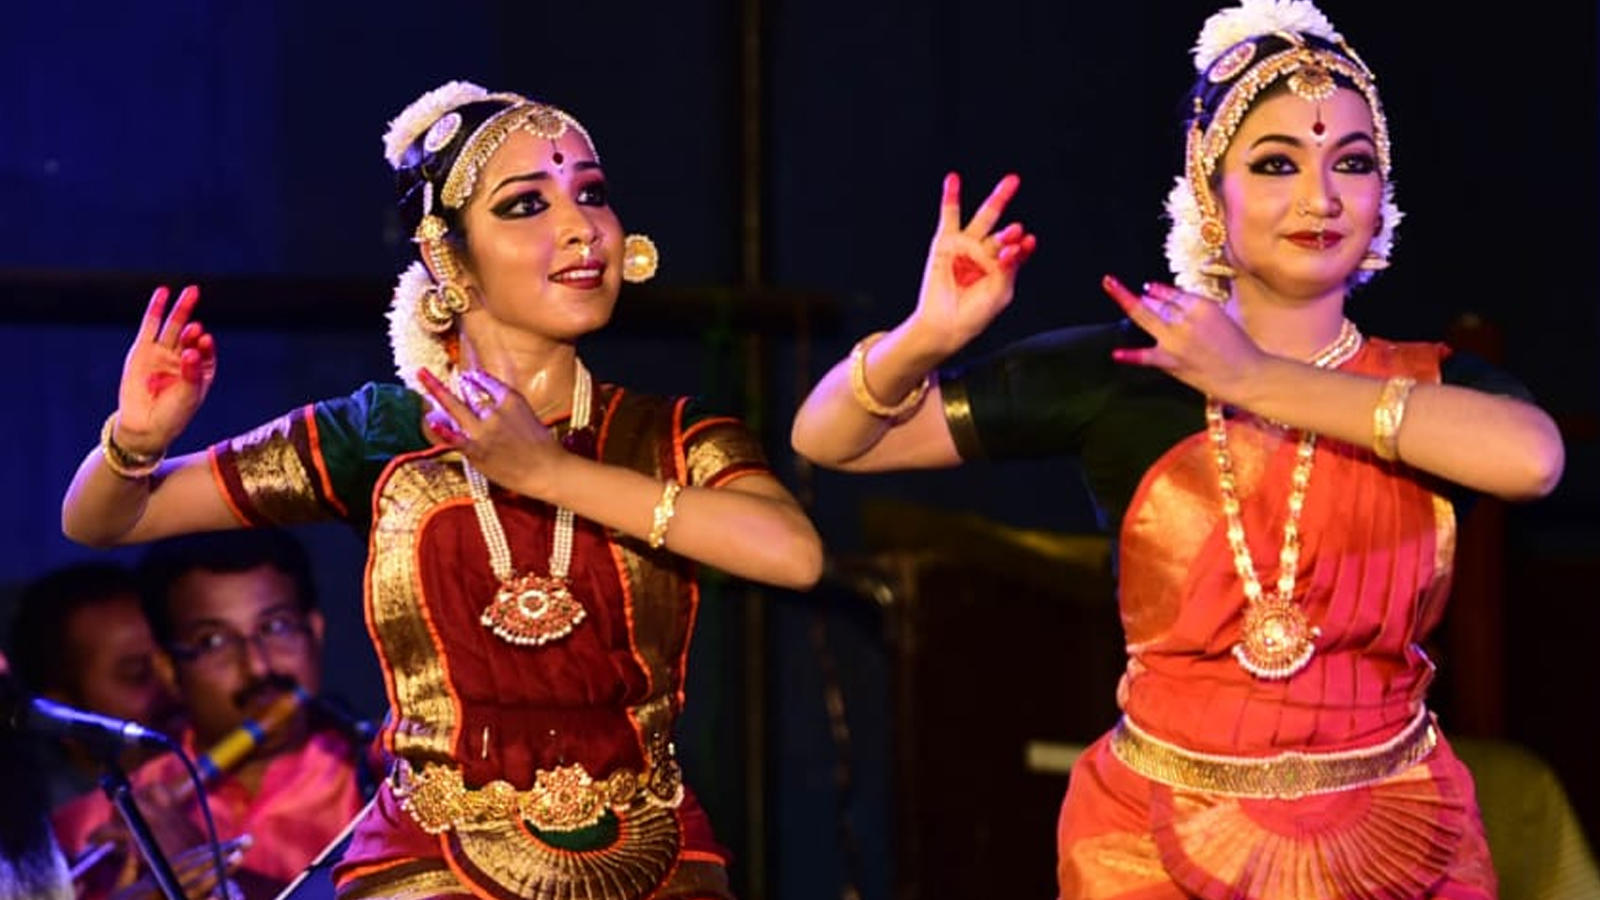 Group of Bharatanatyam dancers enthral the audience in Kochi